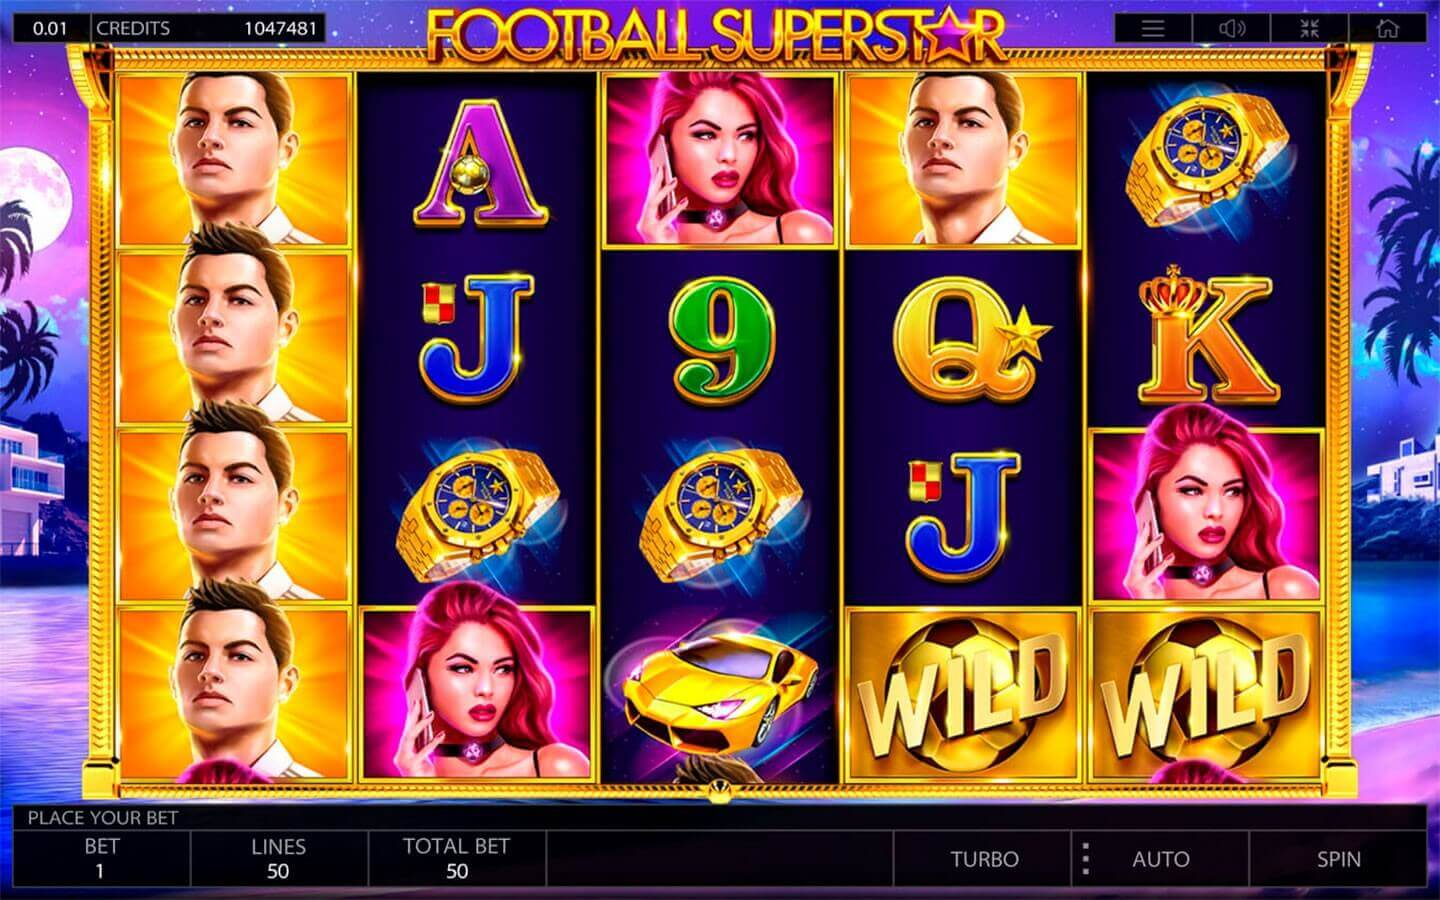 Football Superstar - play demo slot